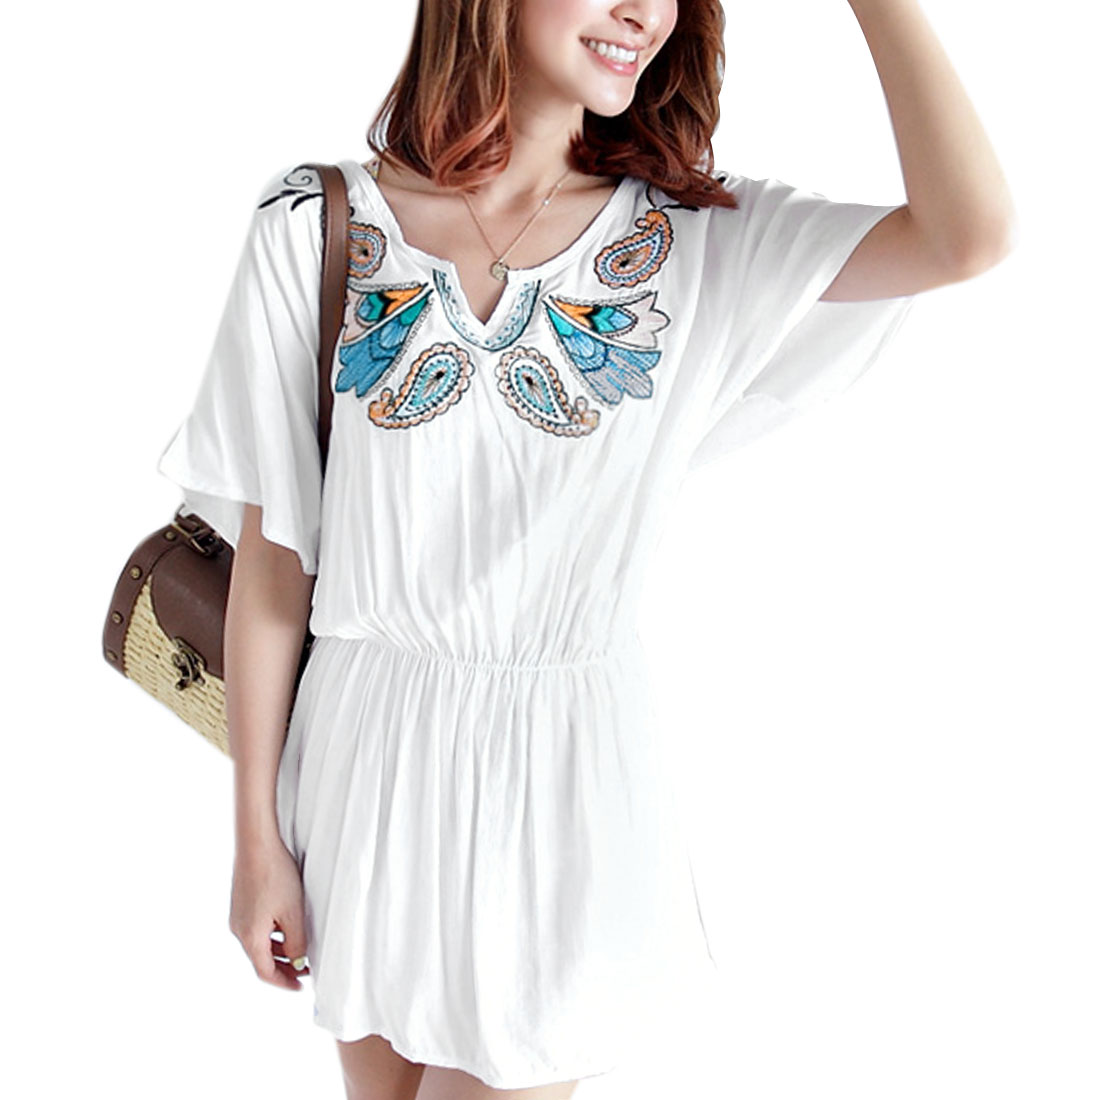 Ladies Short Sleeves Embroidery Prints Tunic Shirts White S